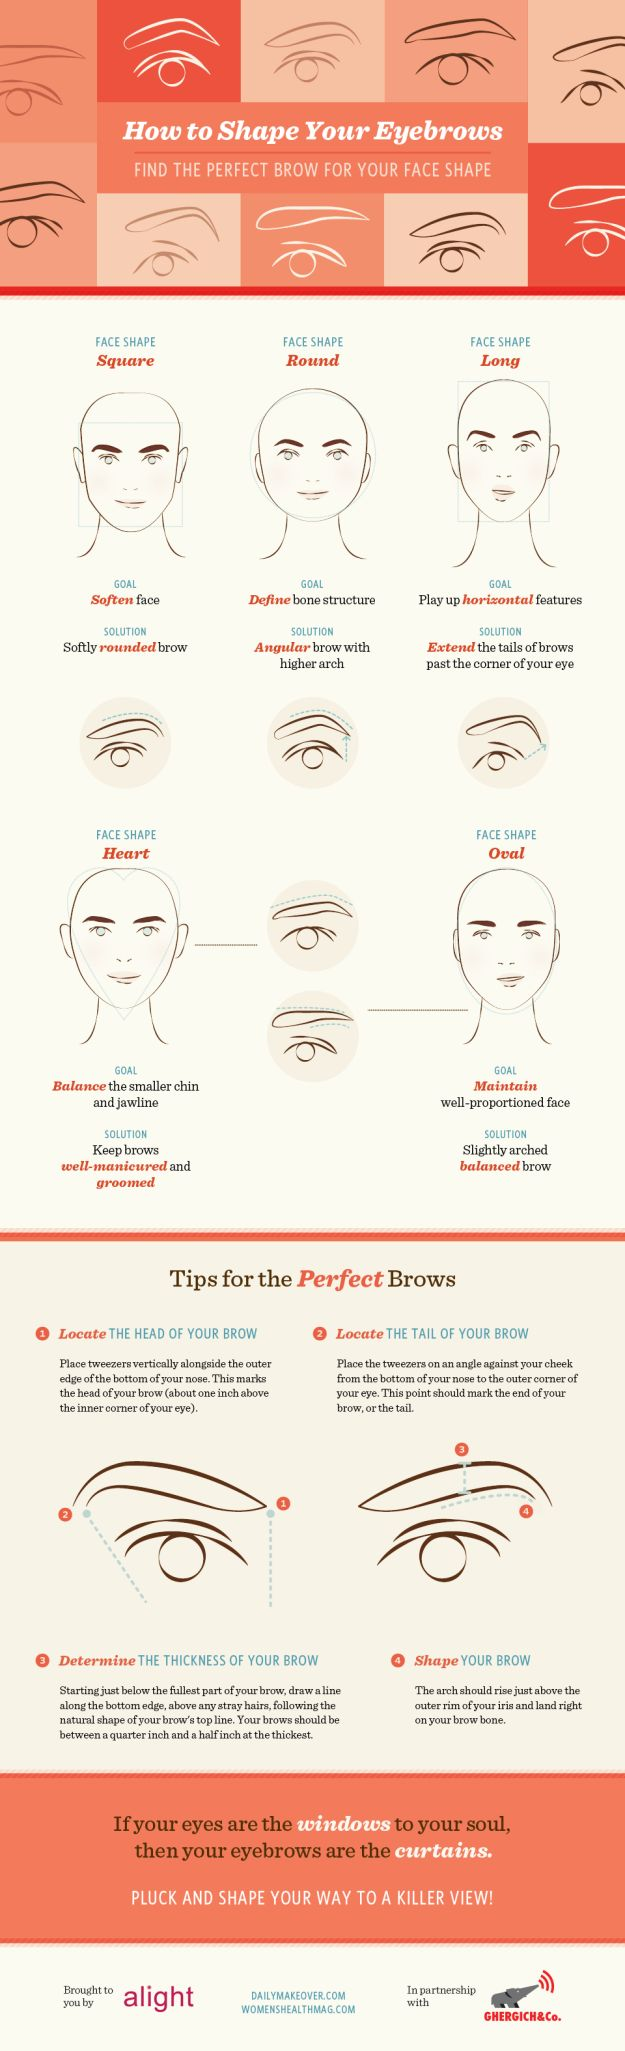 If you want to go further, you can sculpt your eyebrows to match your face shape.